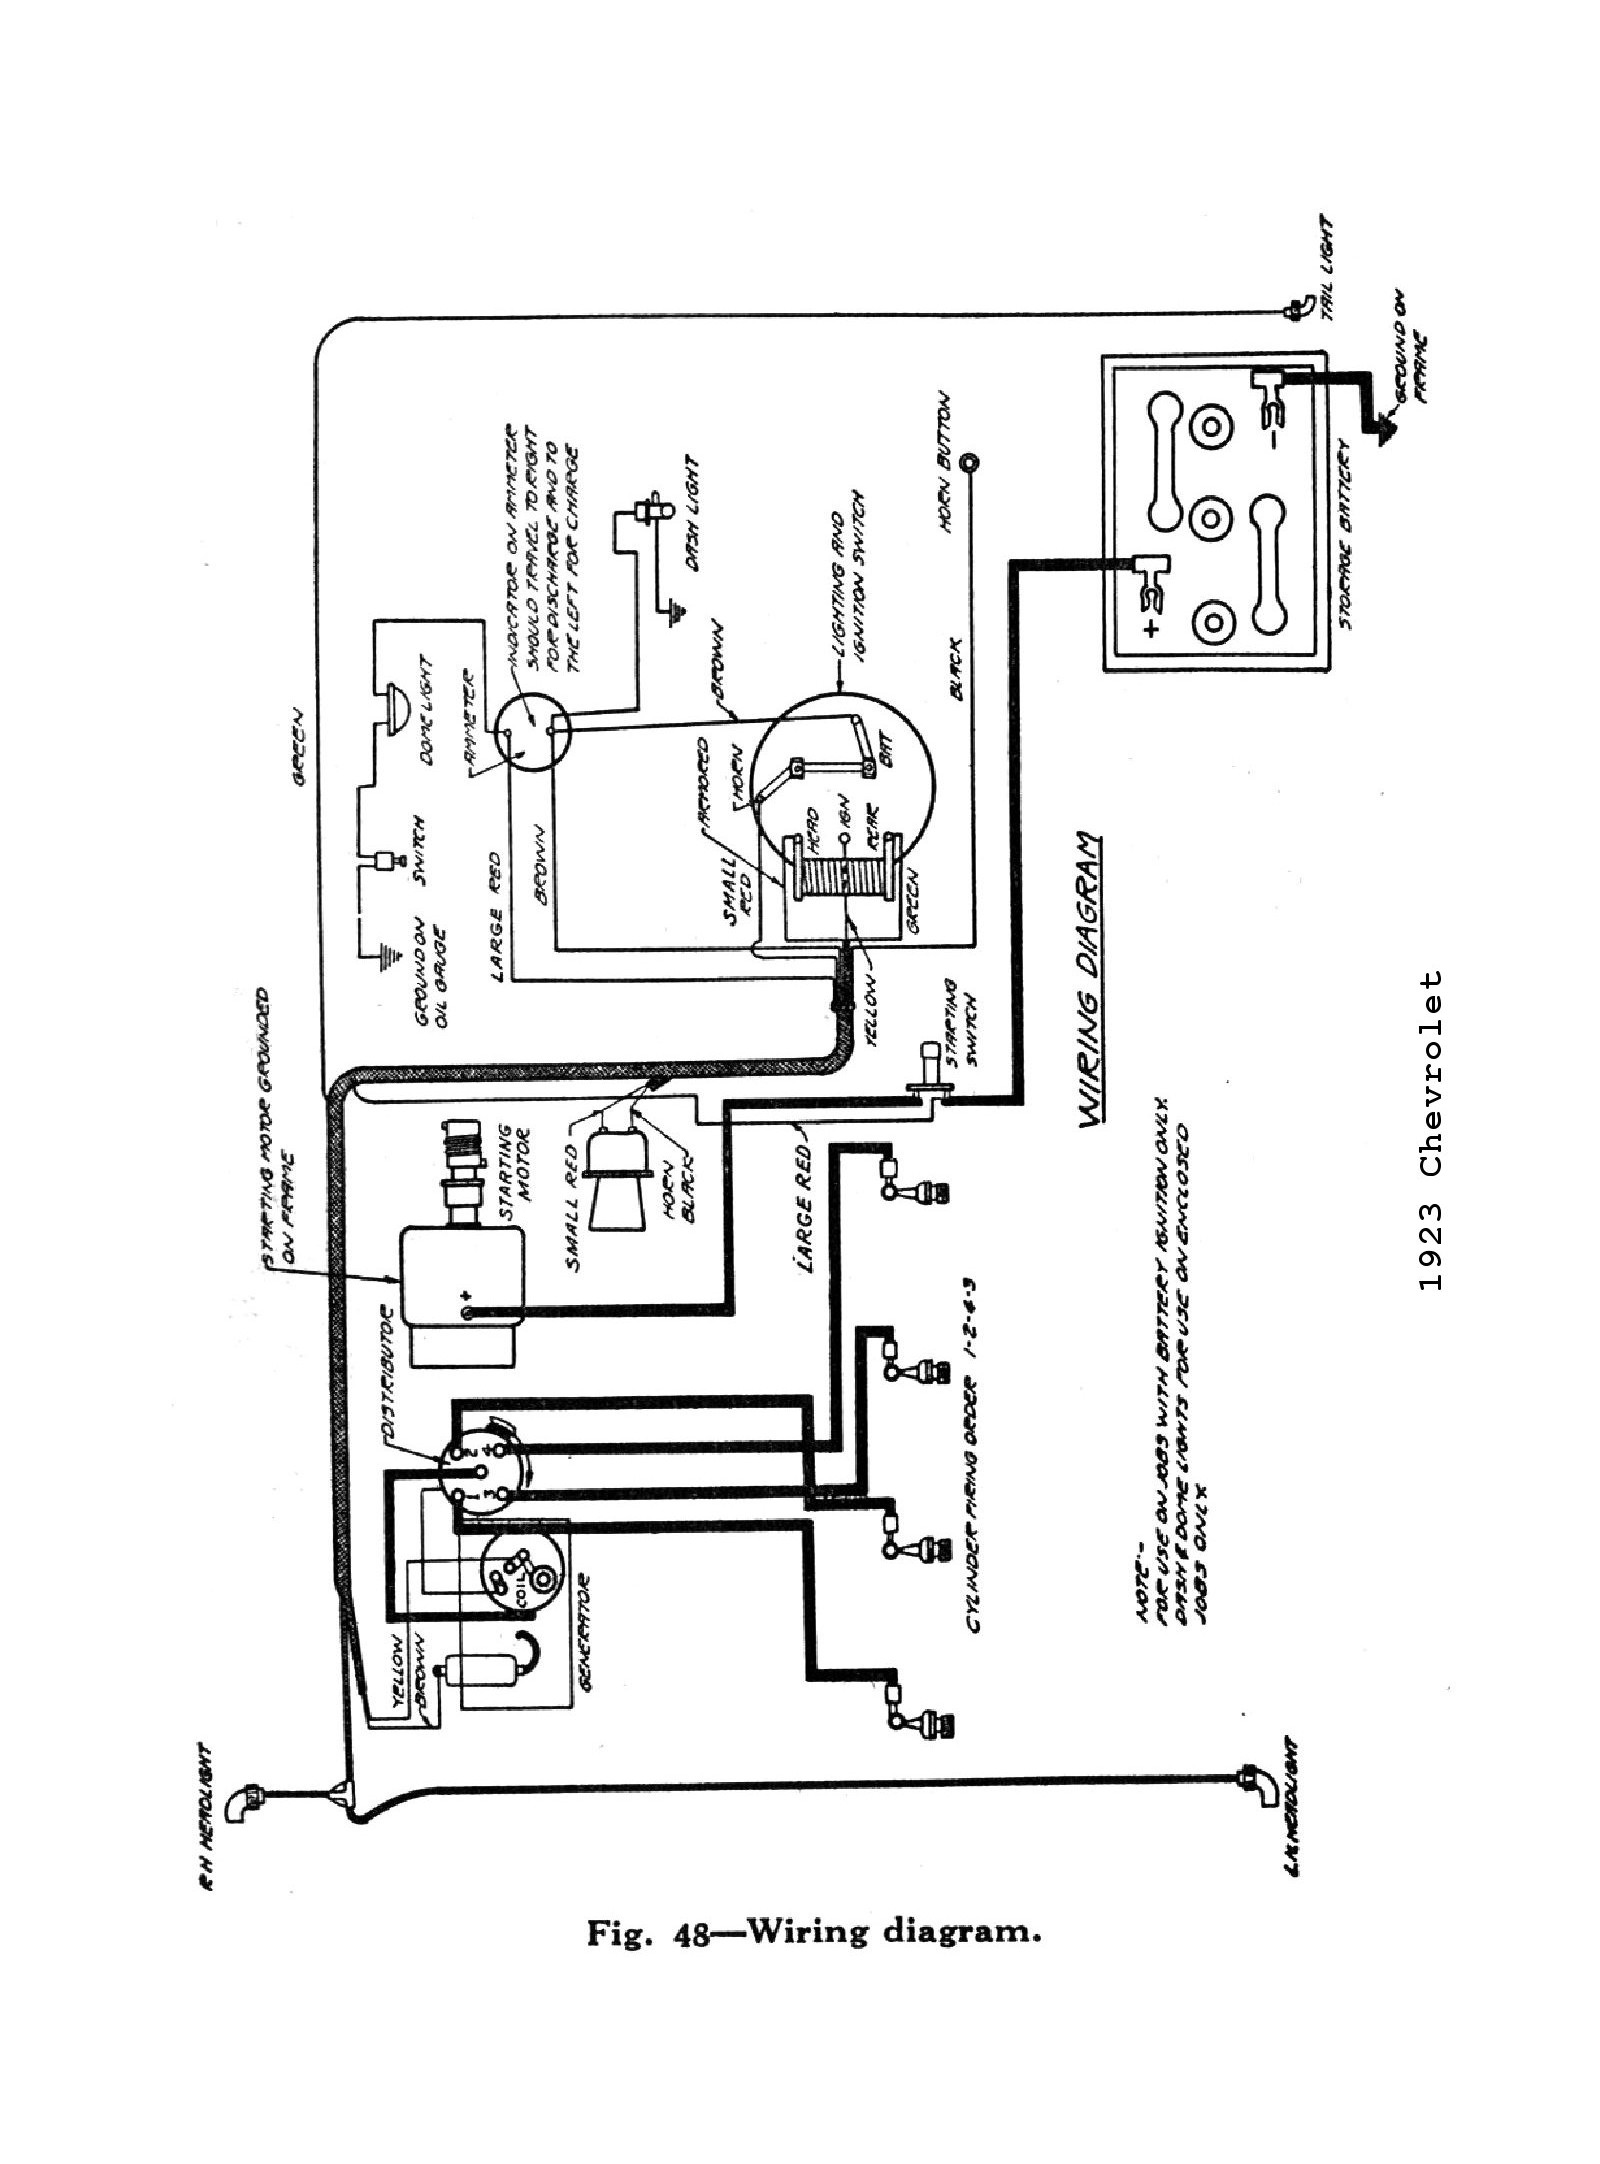 1928 ford model a wiring diagram model a wiring schematics